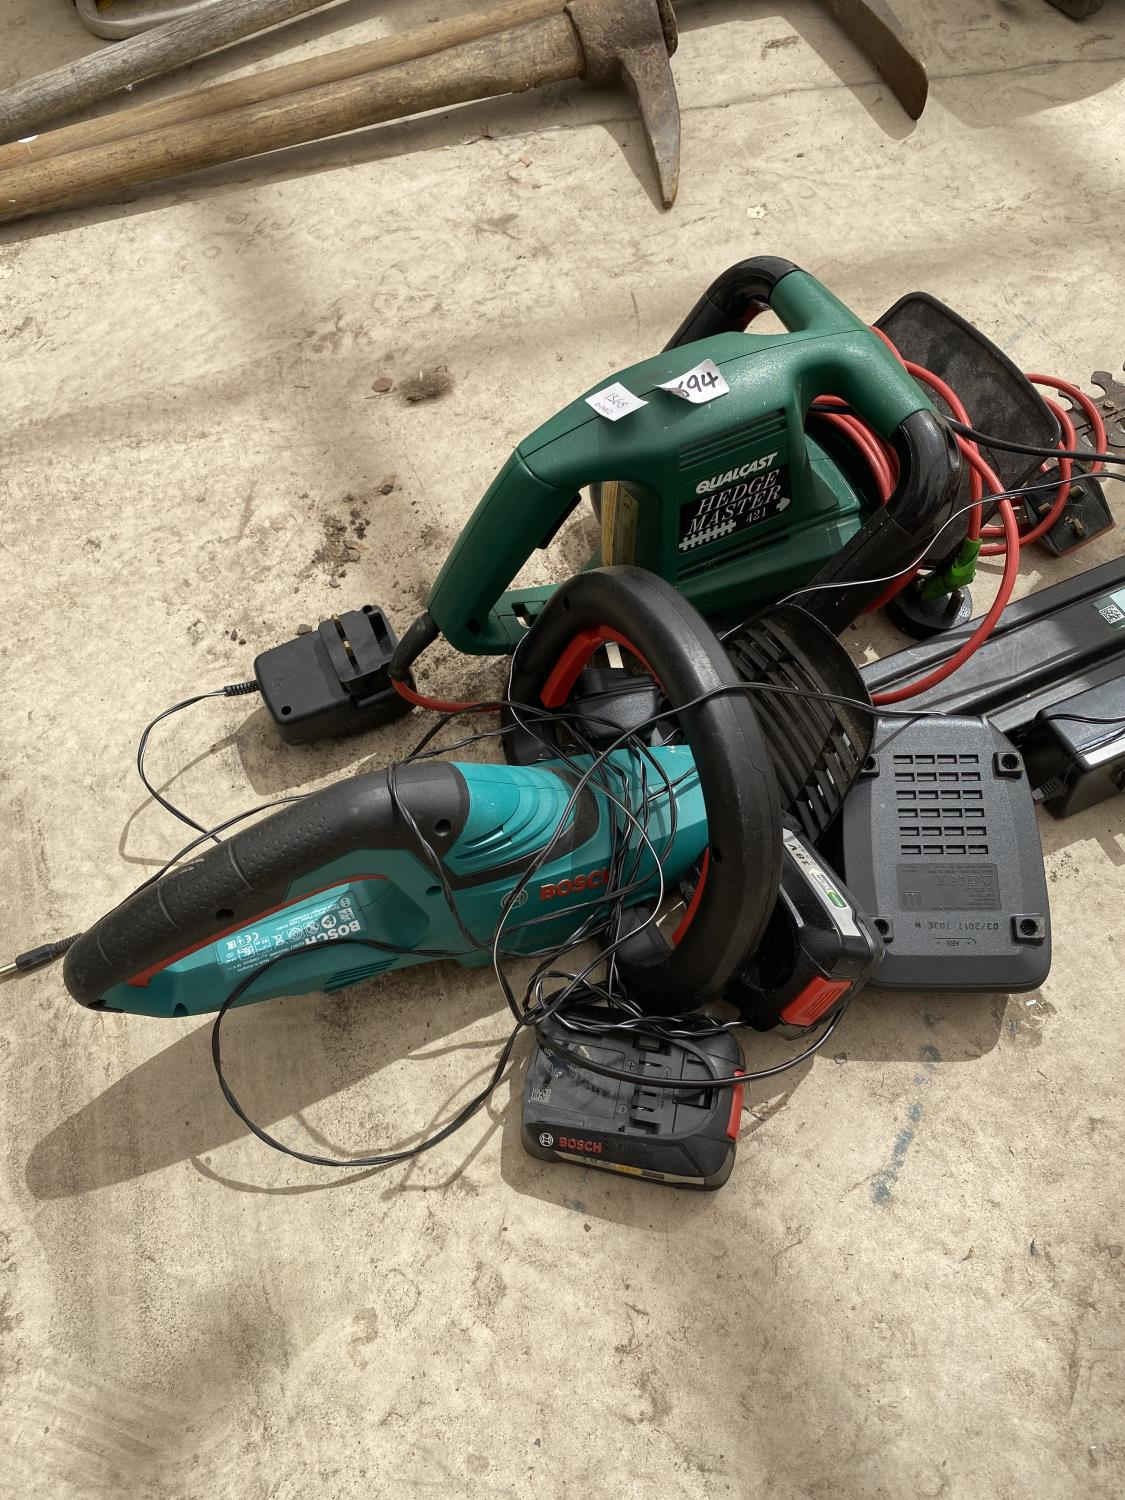 TWO ELECTRIC HEDGE TRIMMERS AND AN ASSORTMENT OF BATTERIES - Image 2 of 3